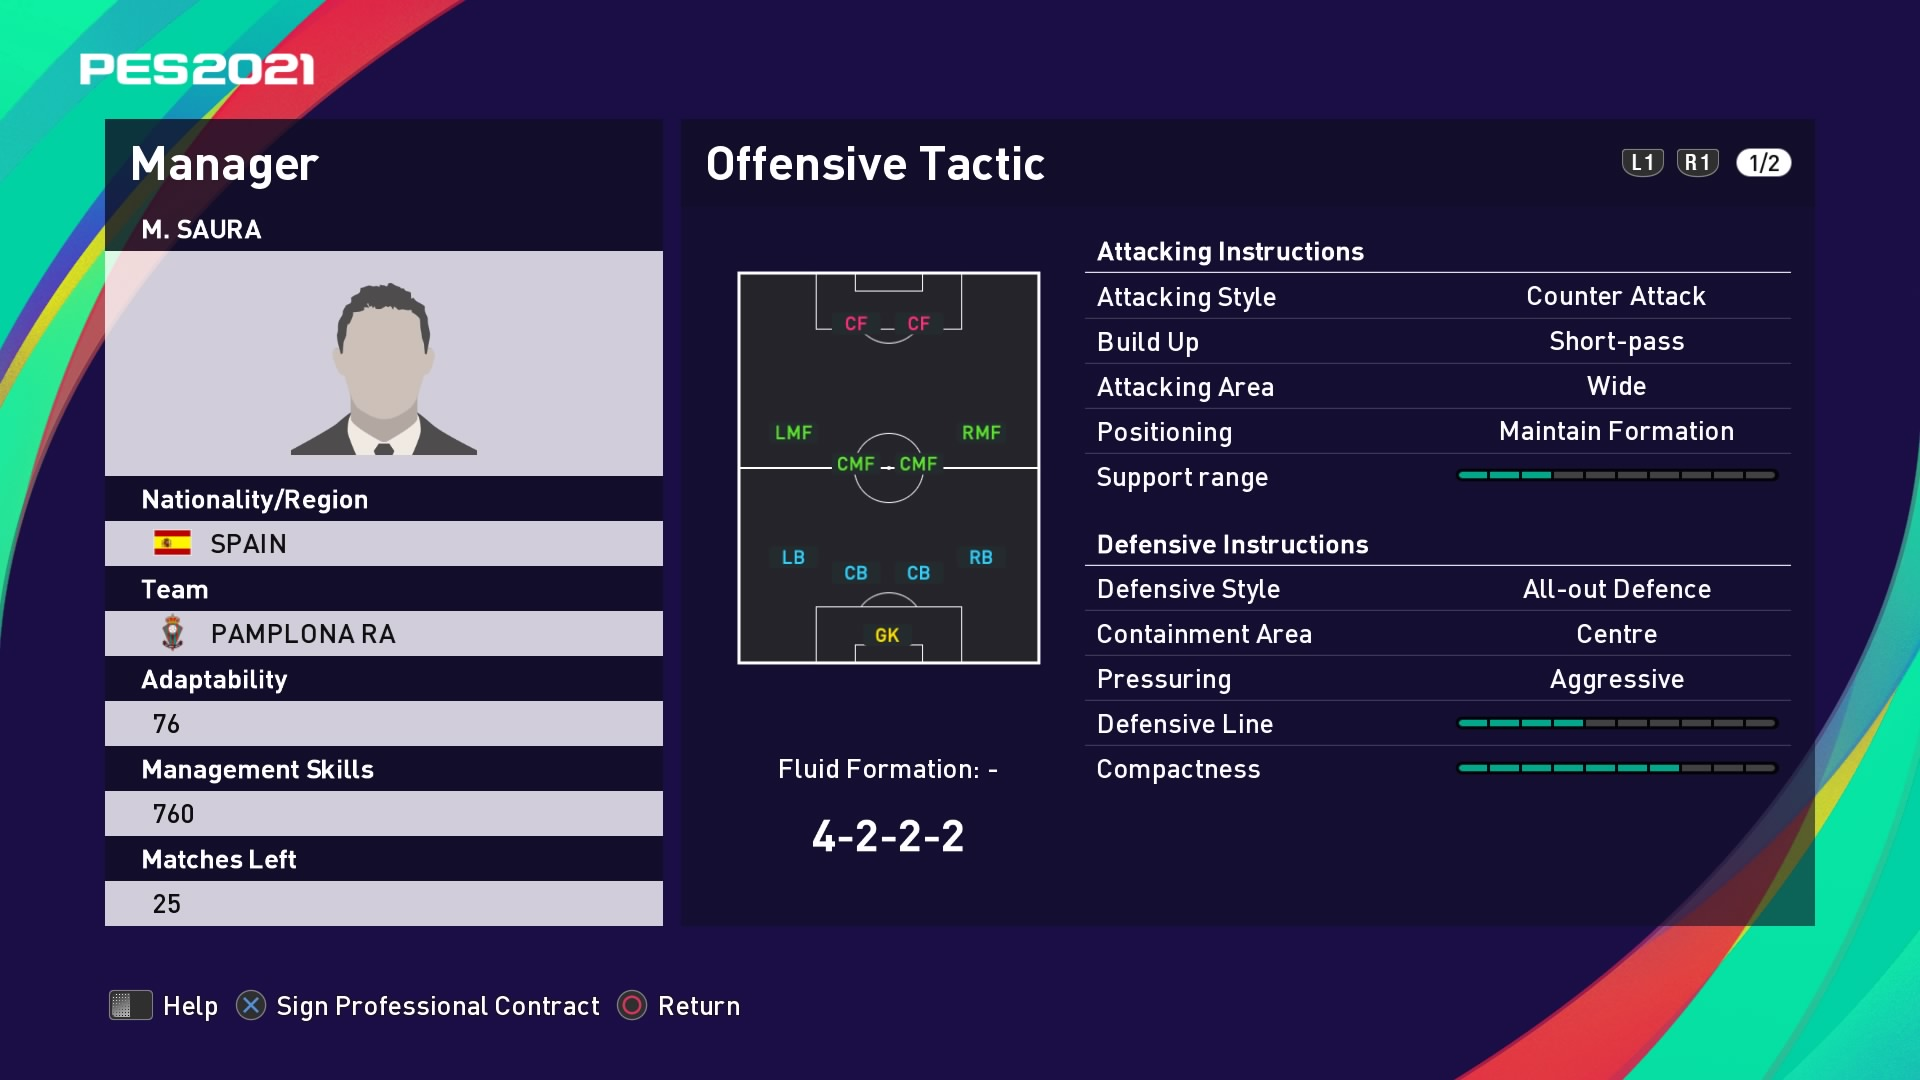 M. Saura (Jagoba Arrasate) Offensive Tactic in PES 2021 myClub